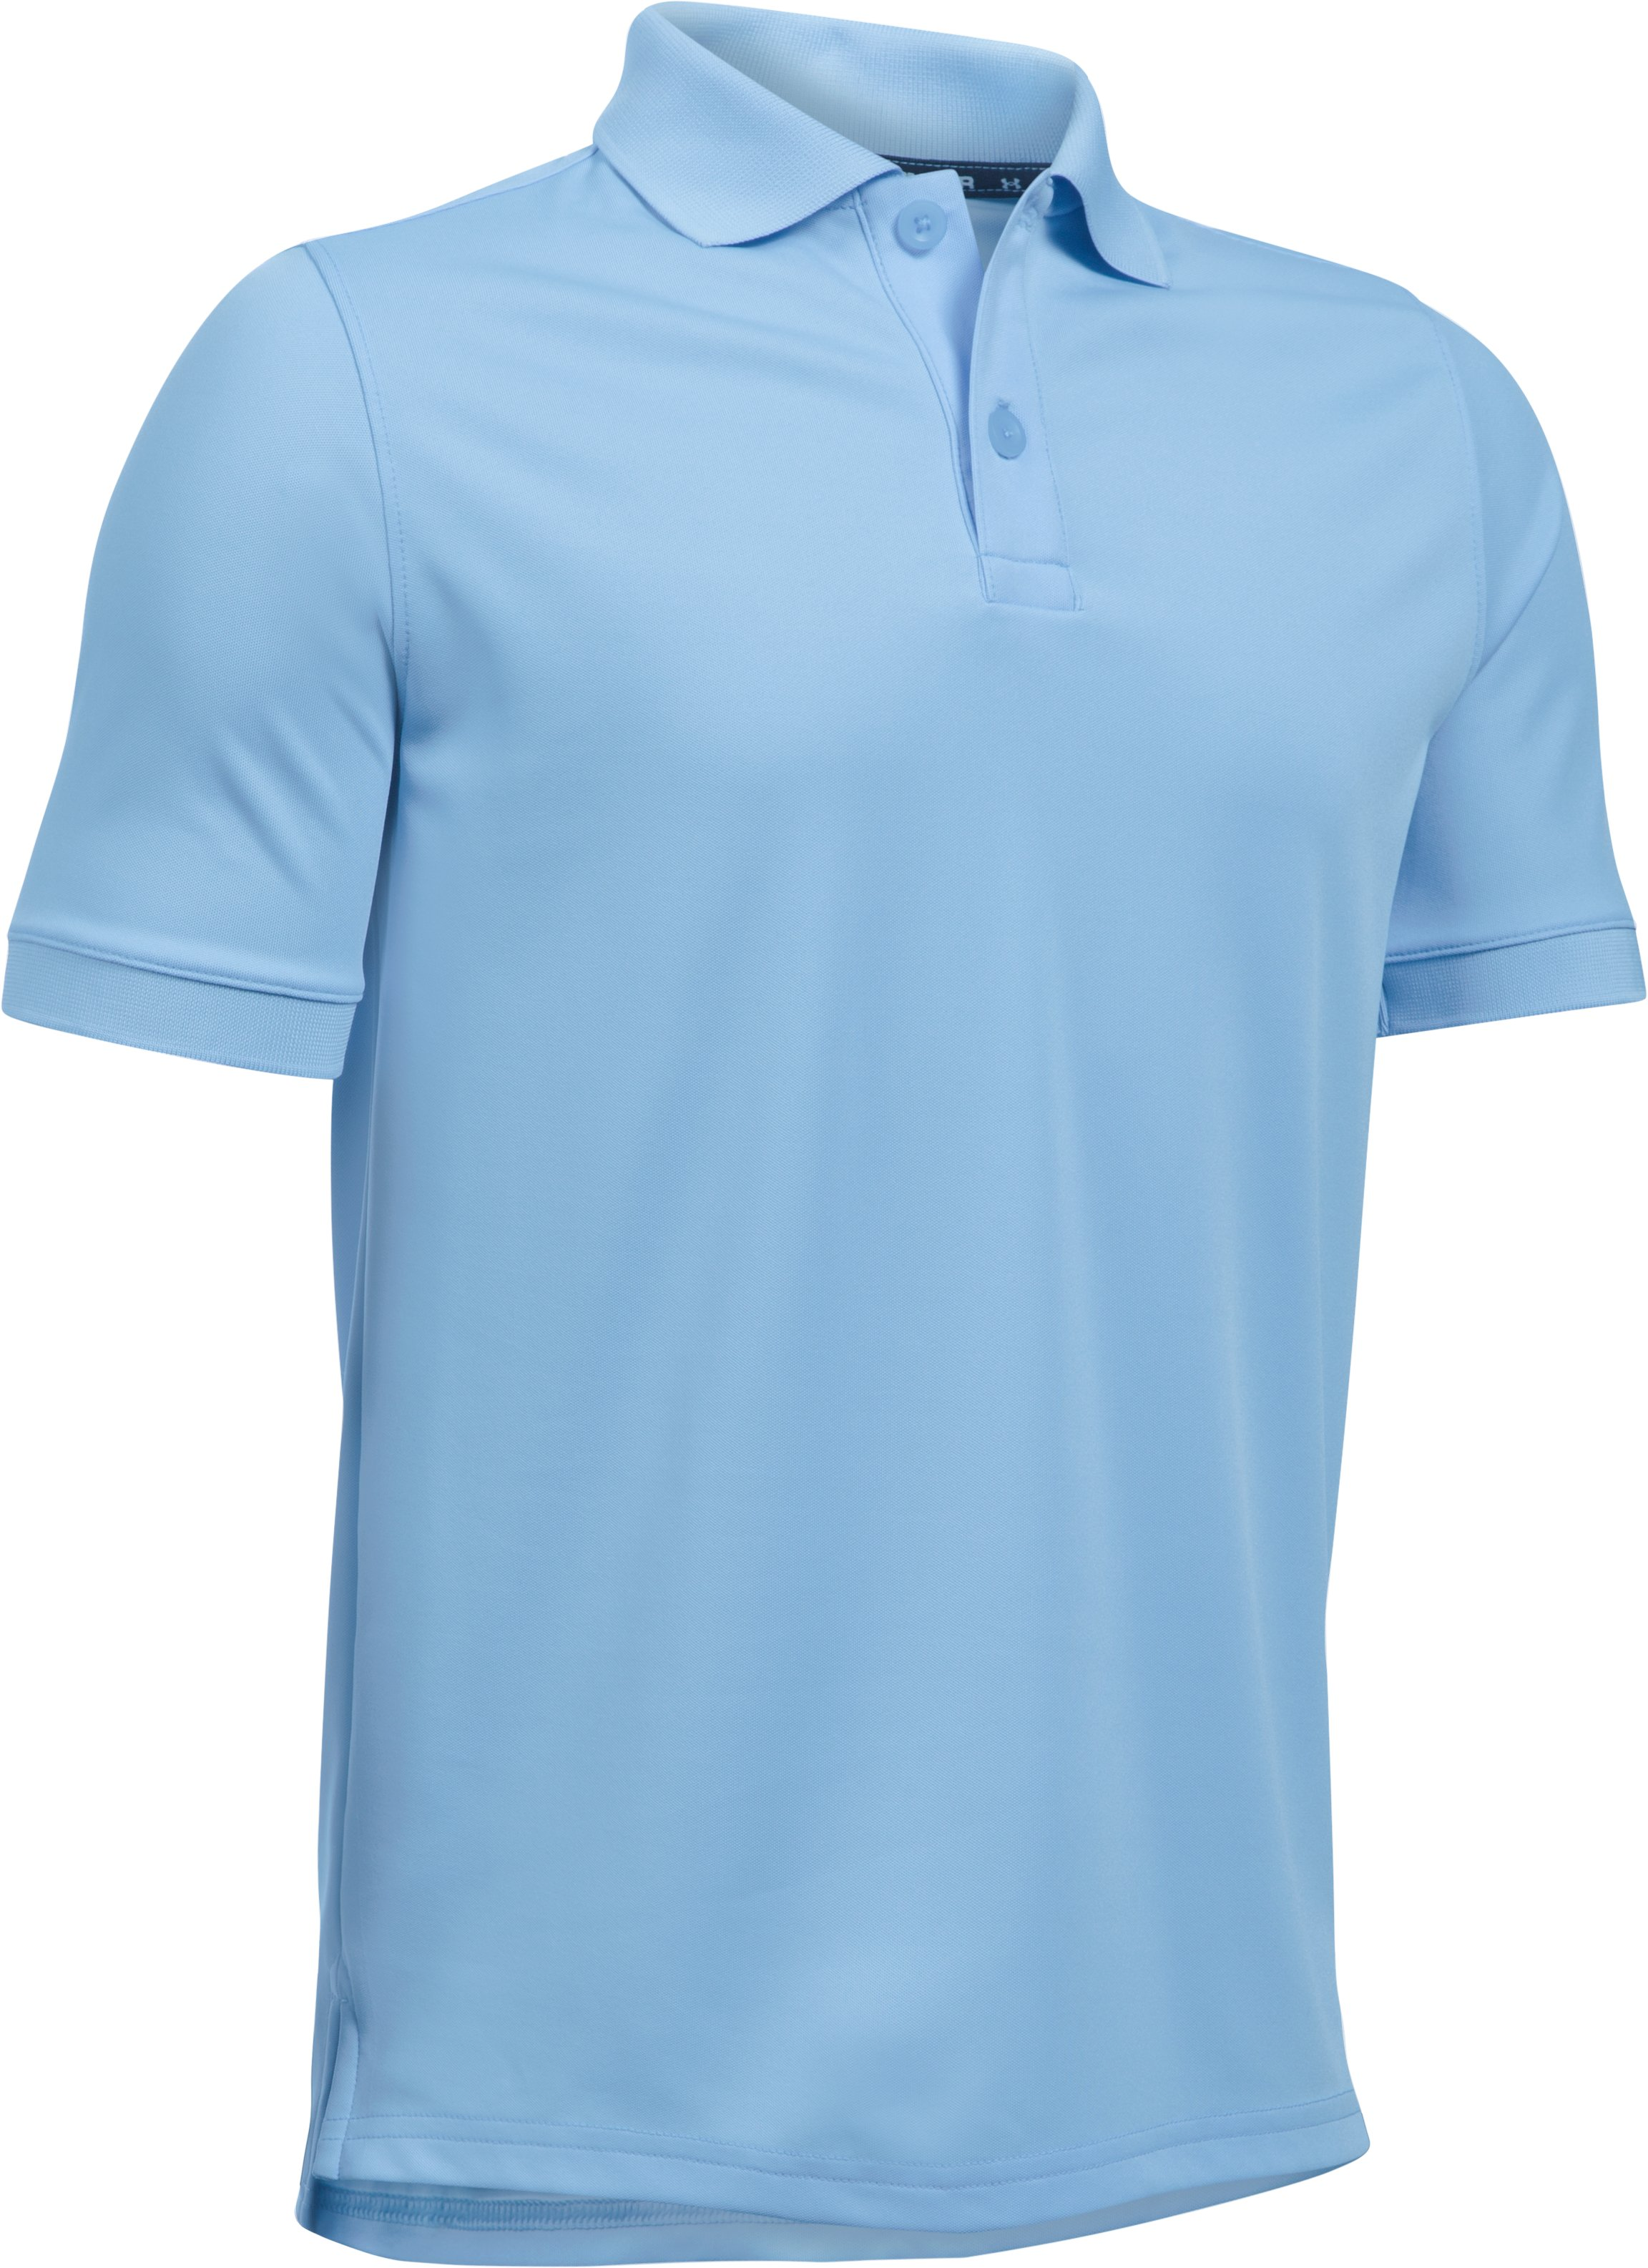 Boys UA Uniform Short Sleeve Polo, Jetstream, undefined